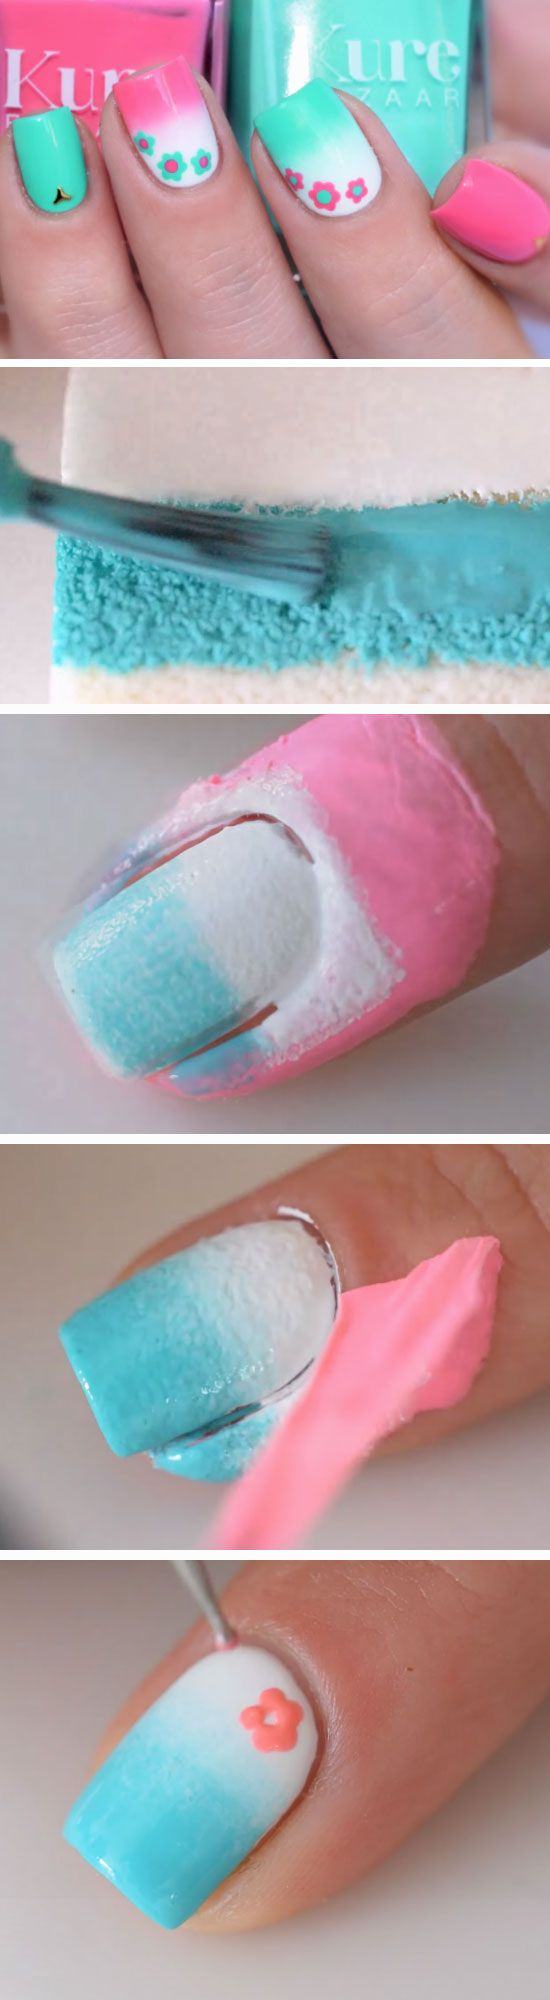 nail design spring ideas